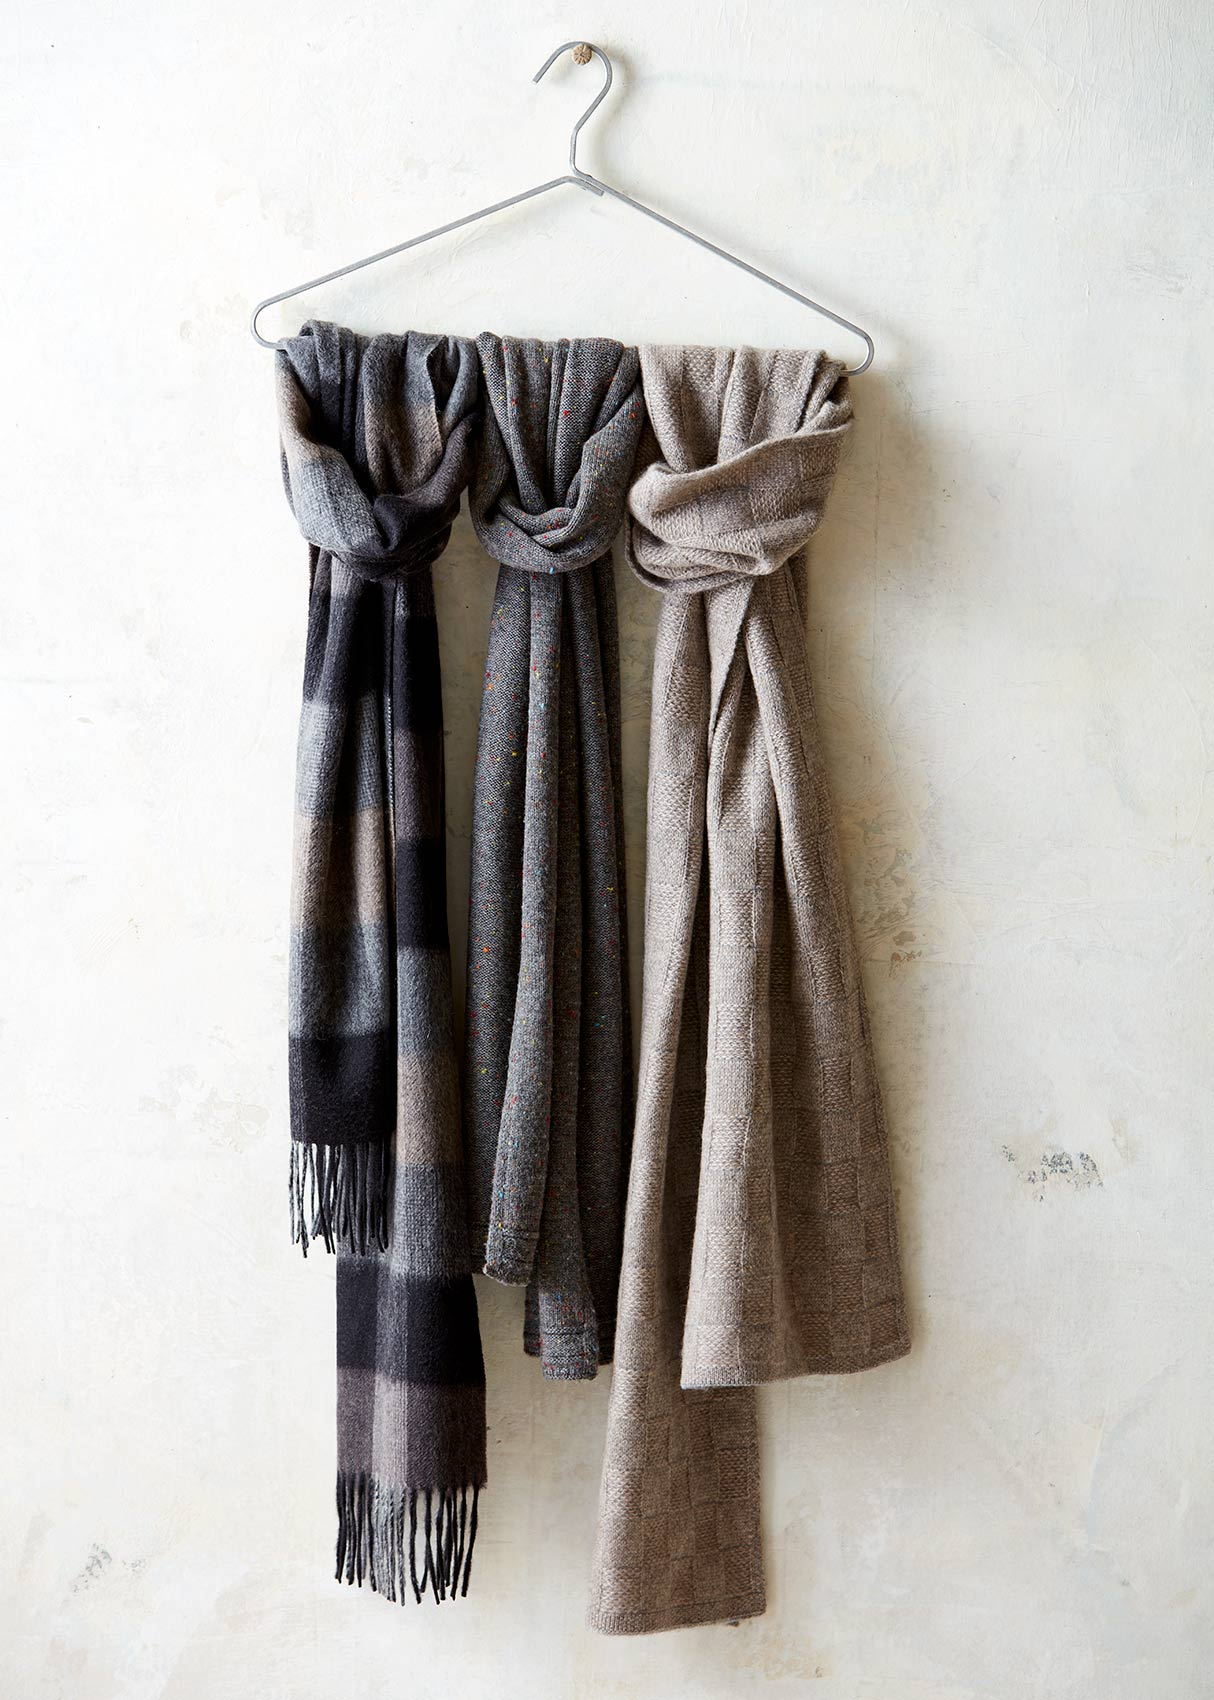 Catalog photography featuring scarves.